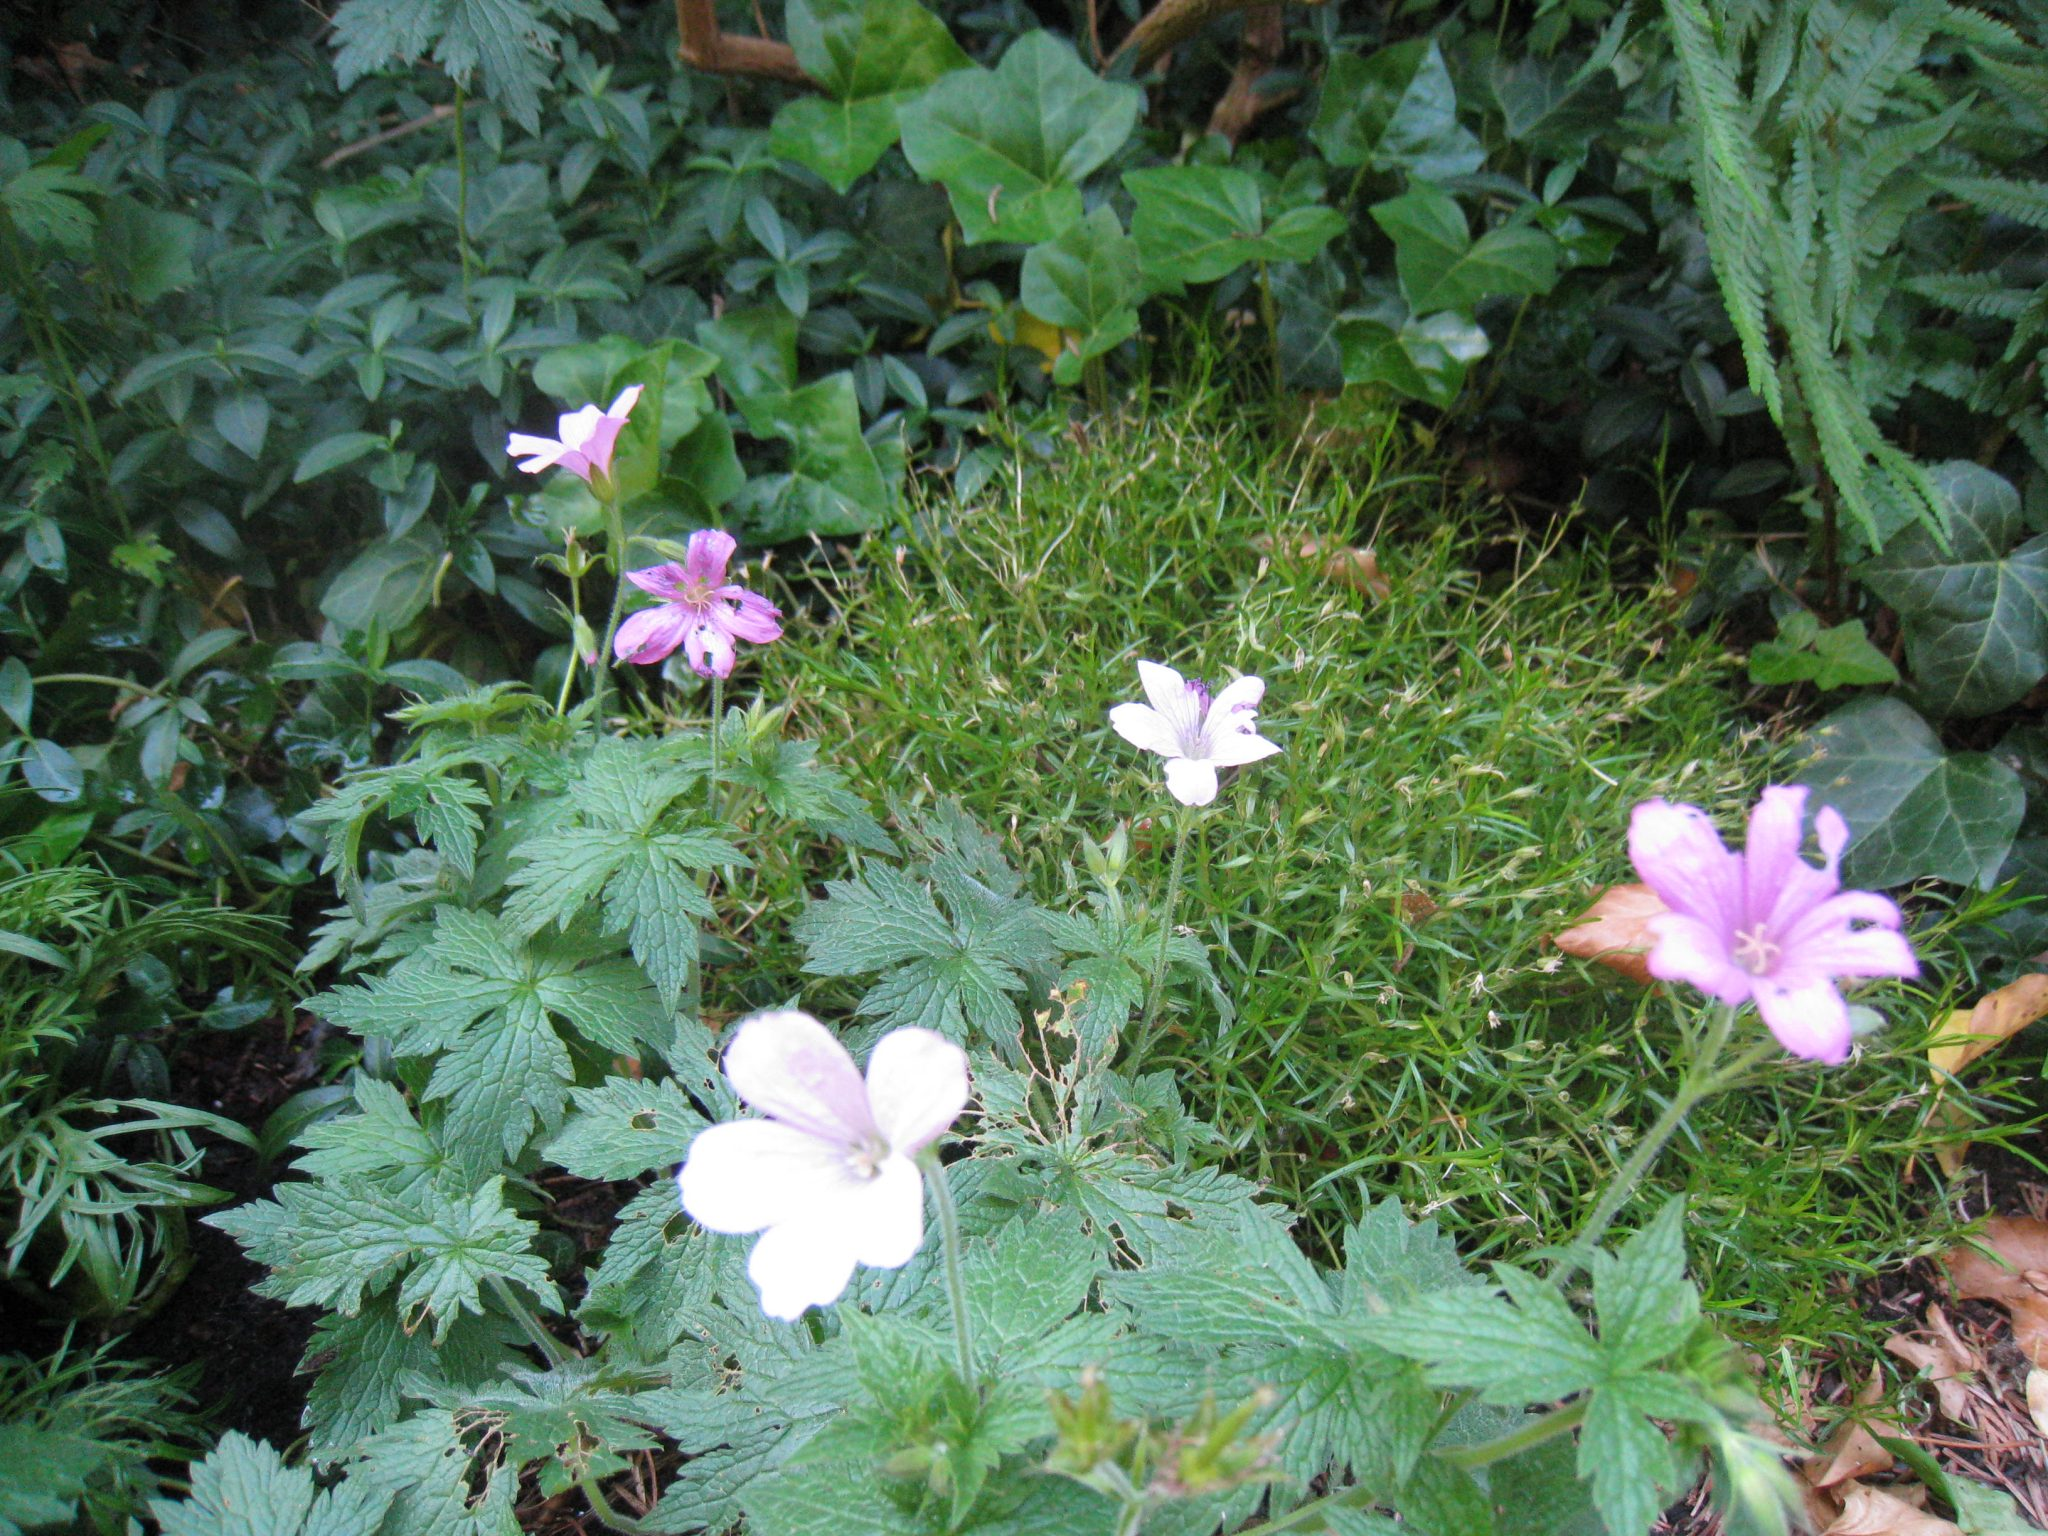 What I Learned About Marketing from Wild Geraniums